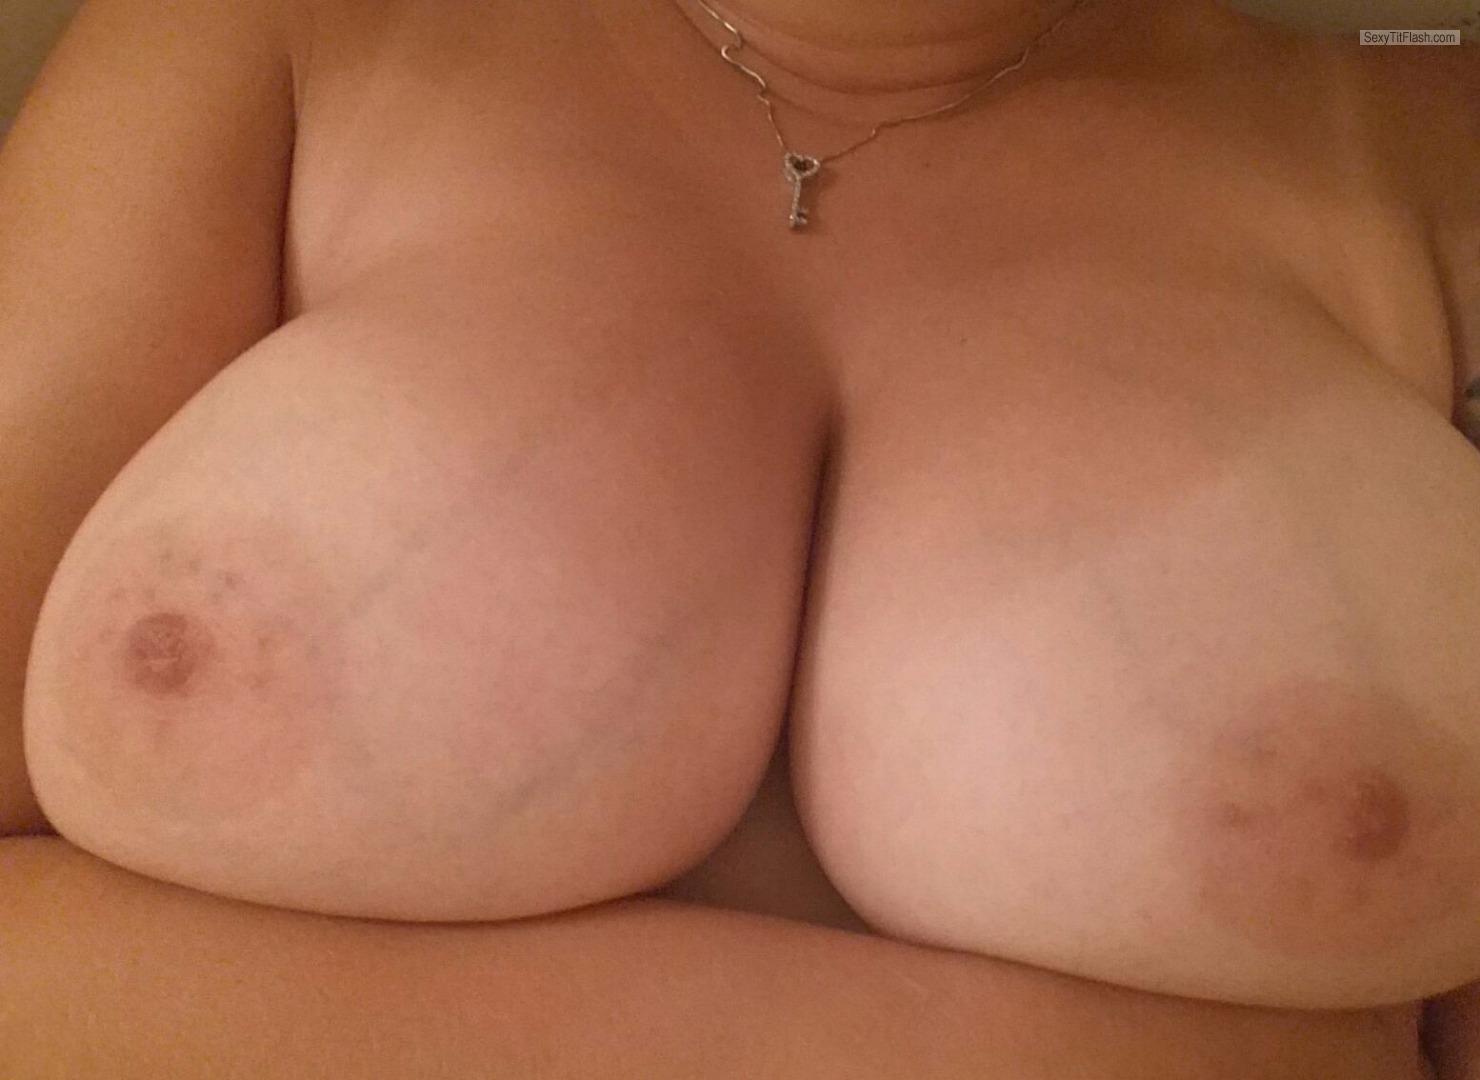 My Very big Tits Selfie by 38ddd